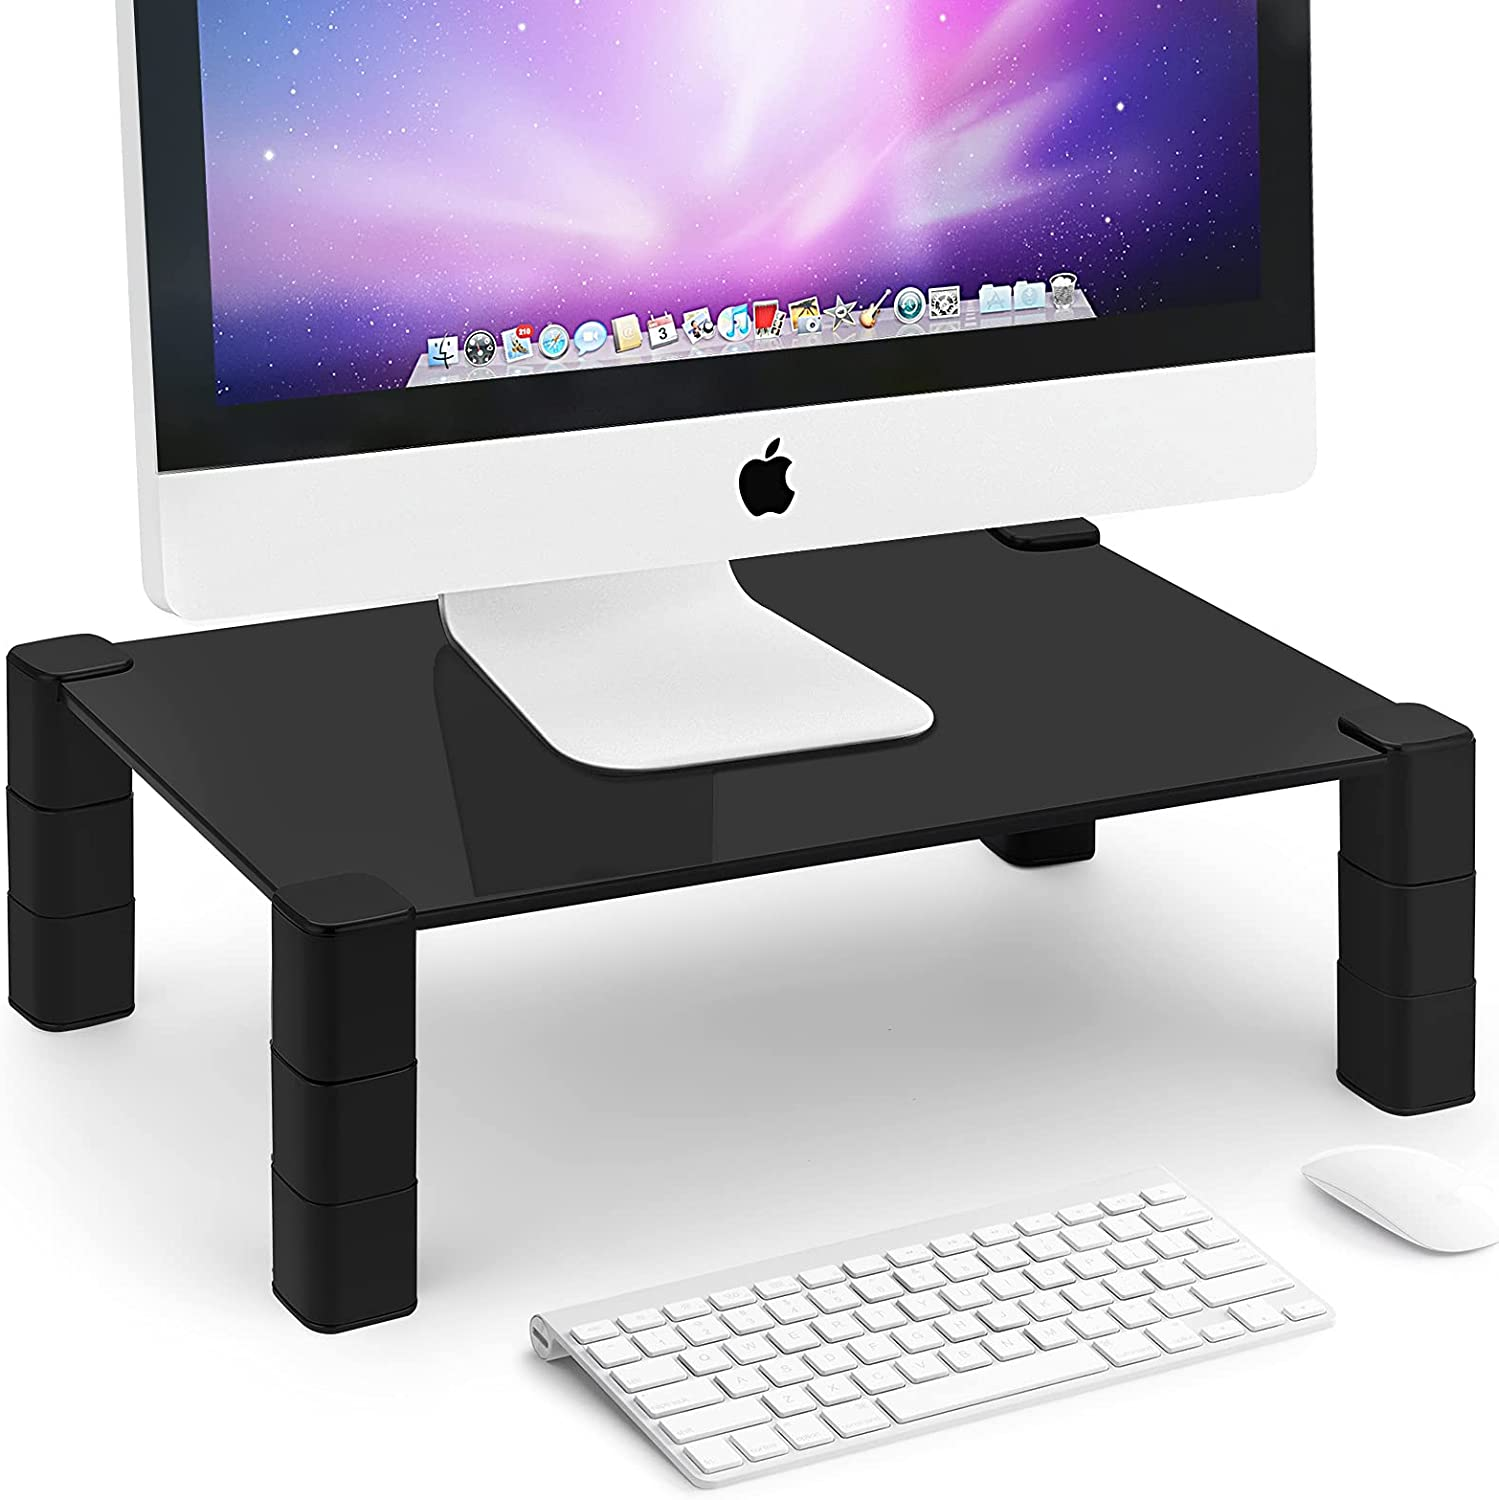 WENHAO Monitor Stand Riser, 3 Height Adjustable Computer Monitor Riser Tempered Glass Laptop Desk Stand, TV Riser, PC Tower Stand for Home Office